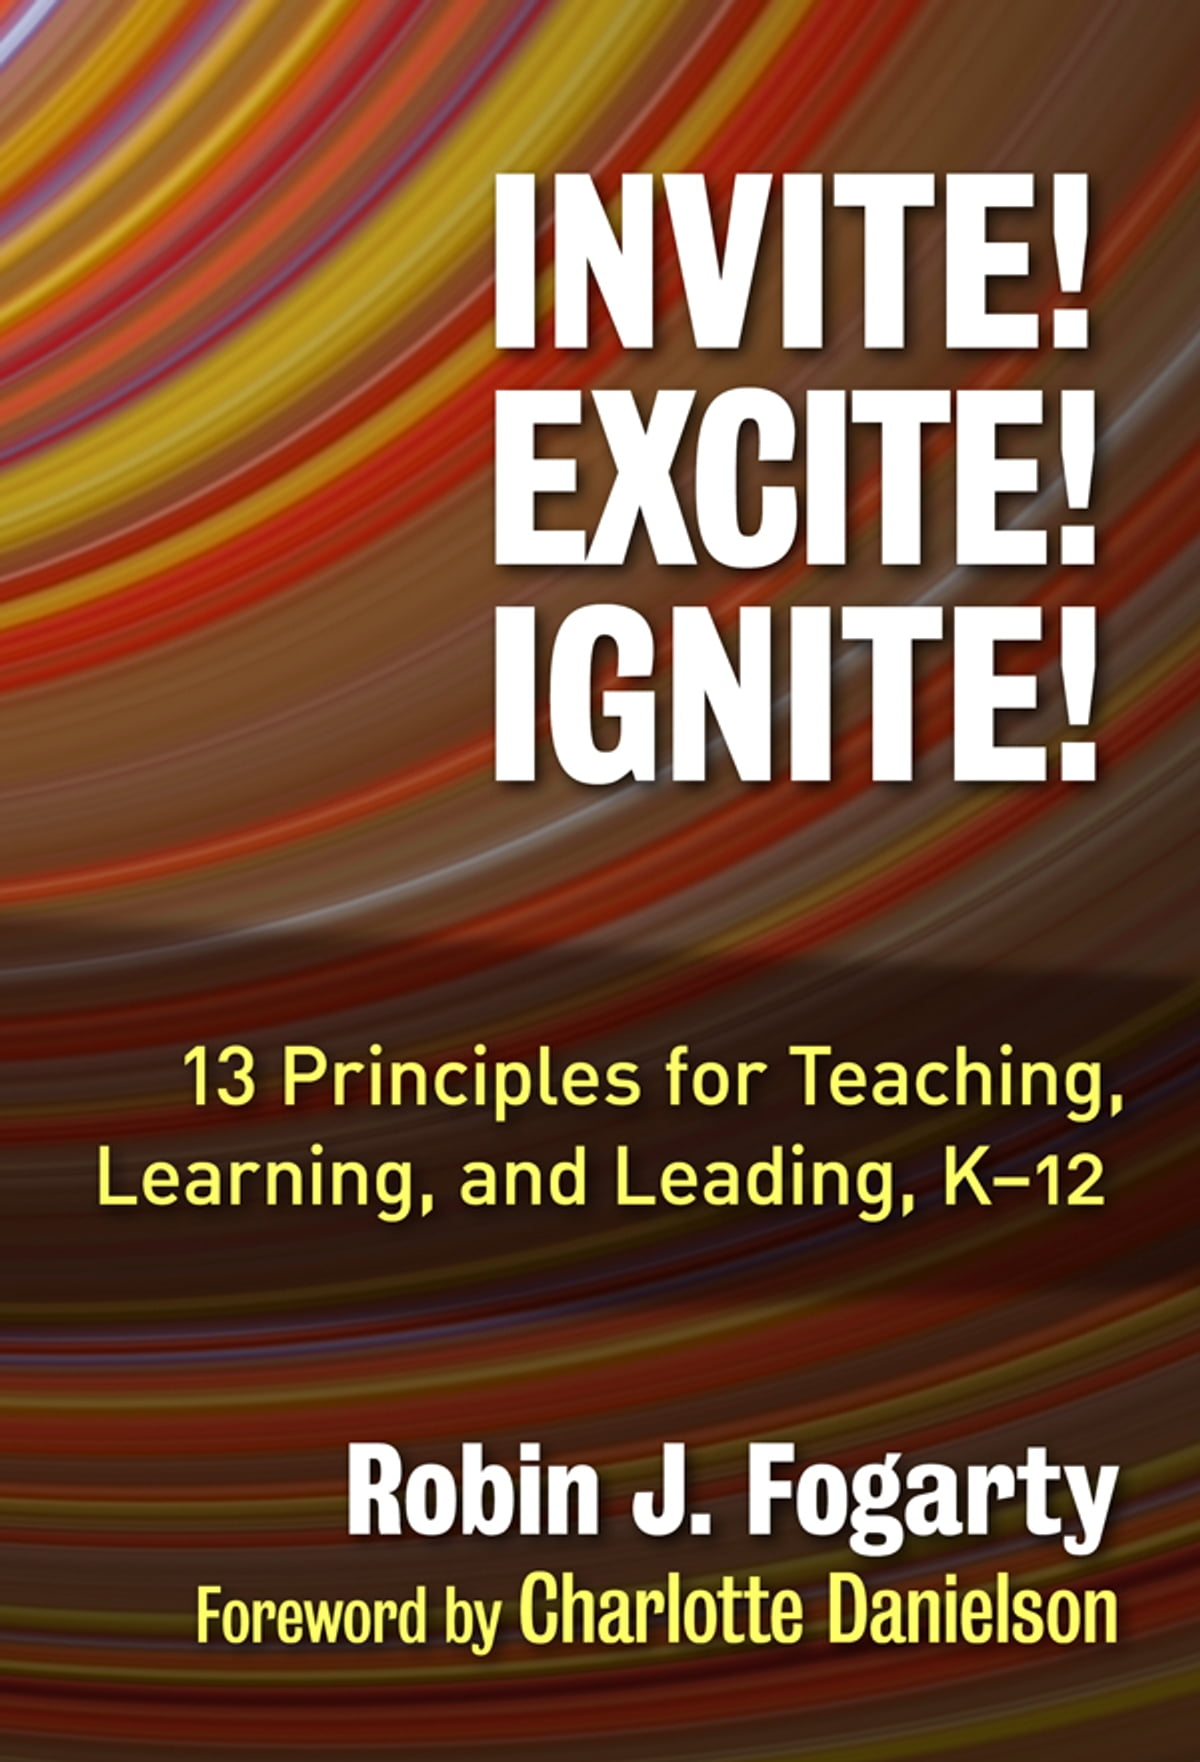 Invite! Excite! Ignite! eBook by Robin J. Fogarty - 9780807774687 | Rakuten  Kobo